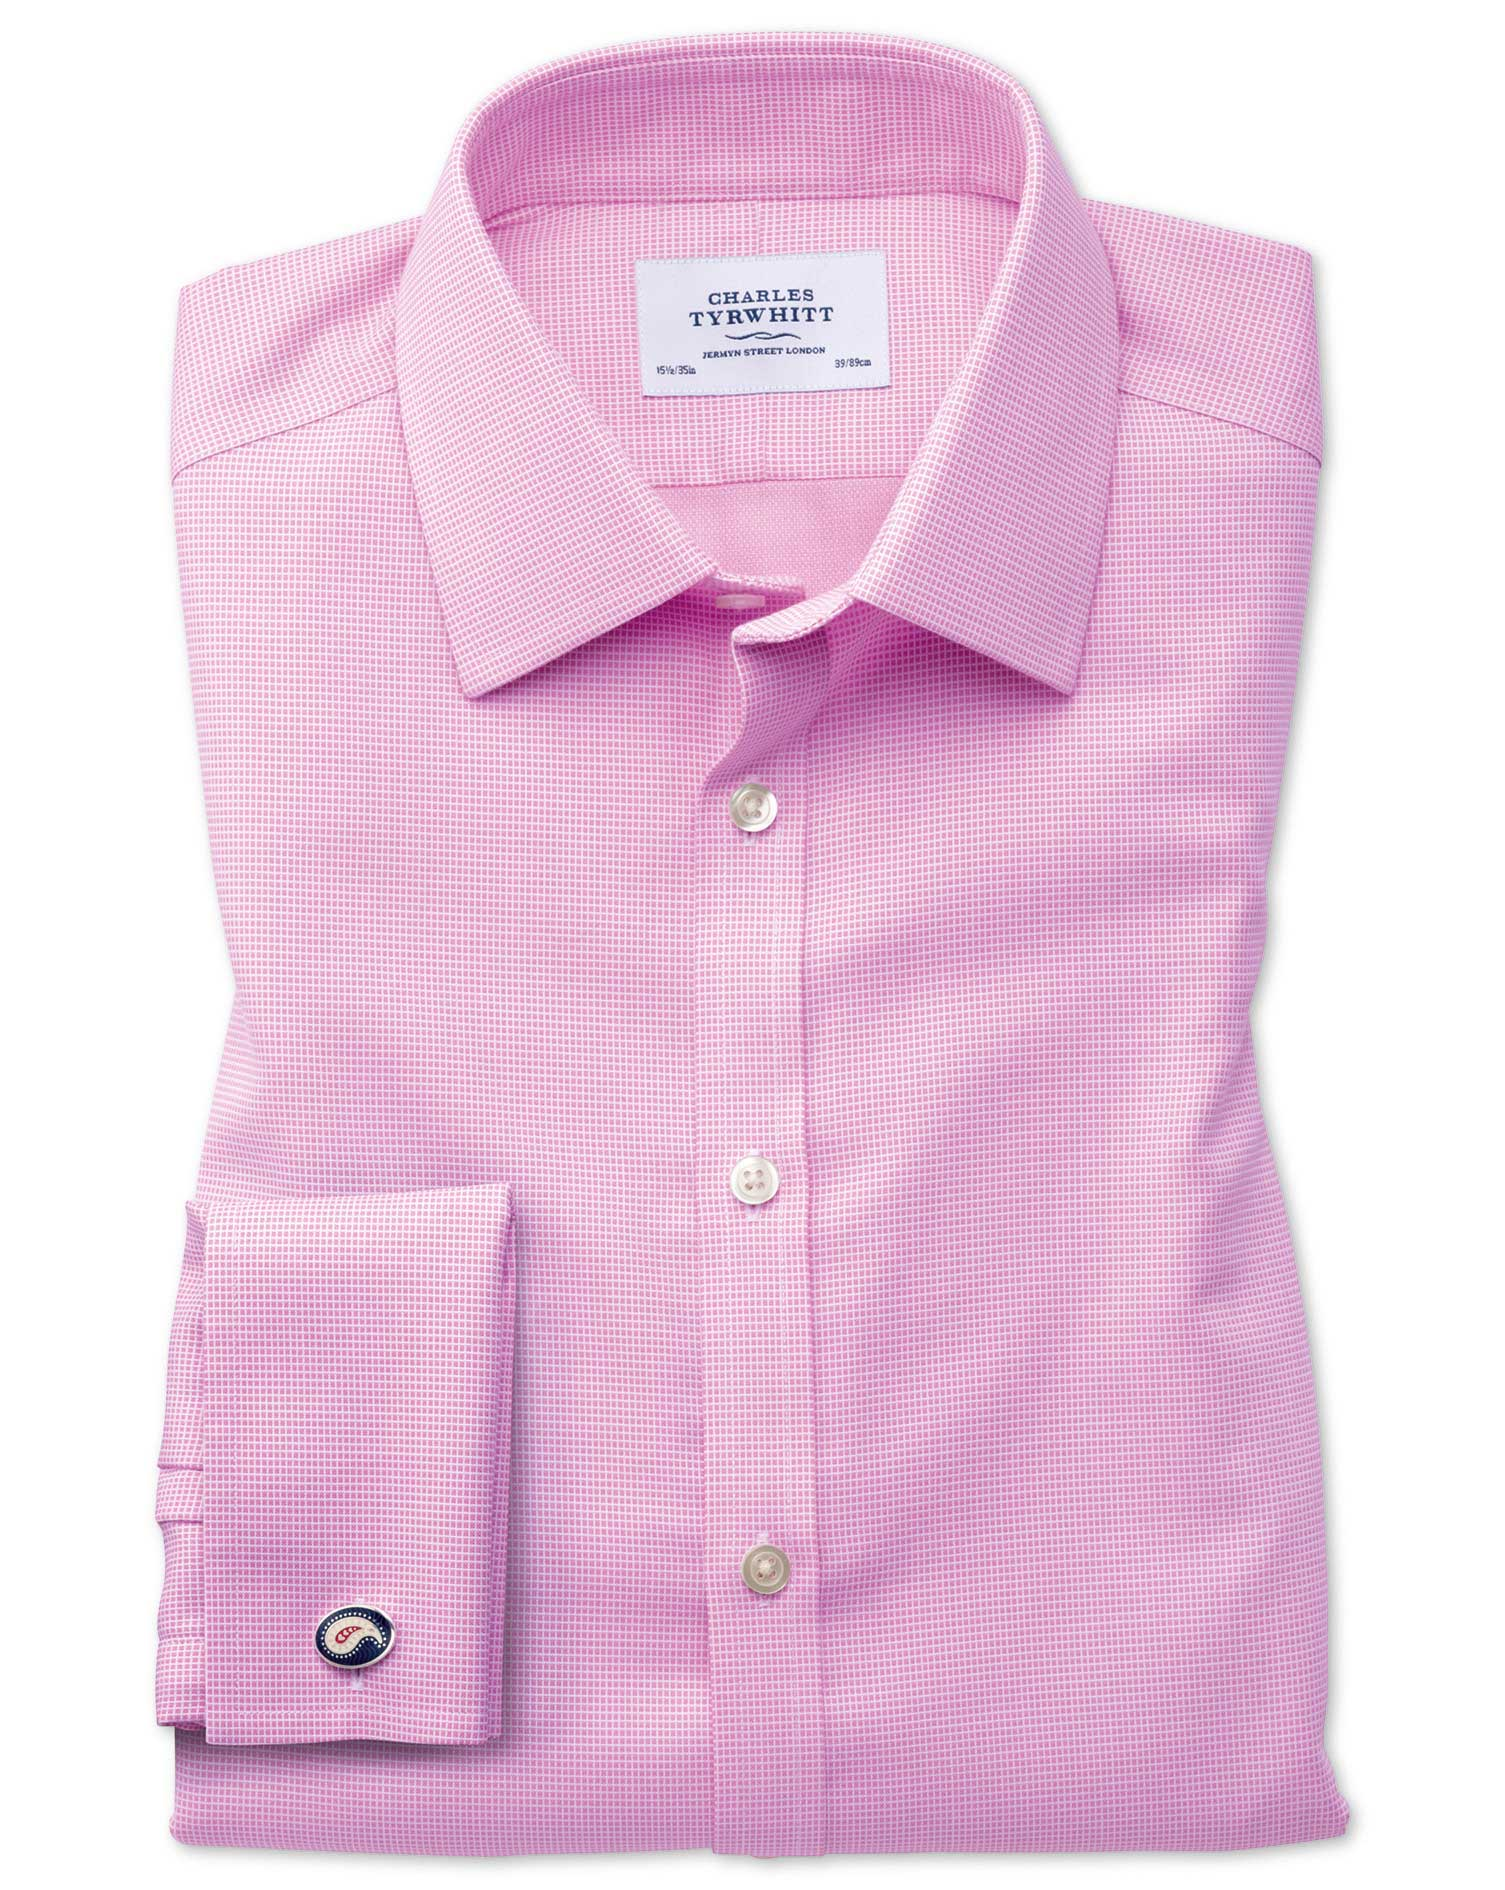 Classic Fit Non-Iron Square Weave Pink Cotton Formal Shirt Single Cuff Size 17/37 by Charles Tyrwhit